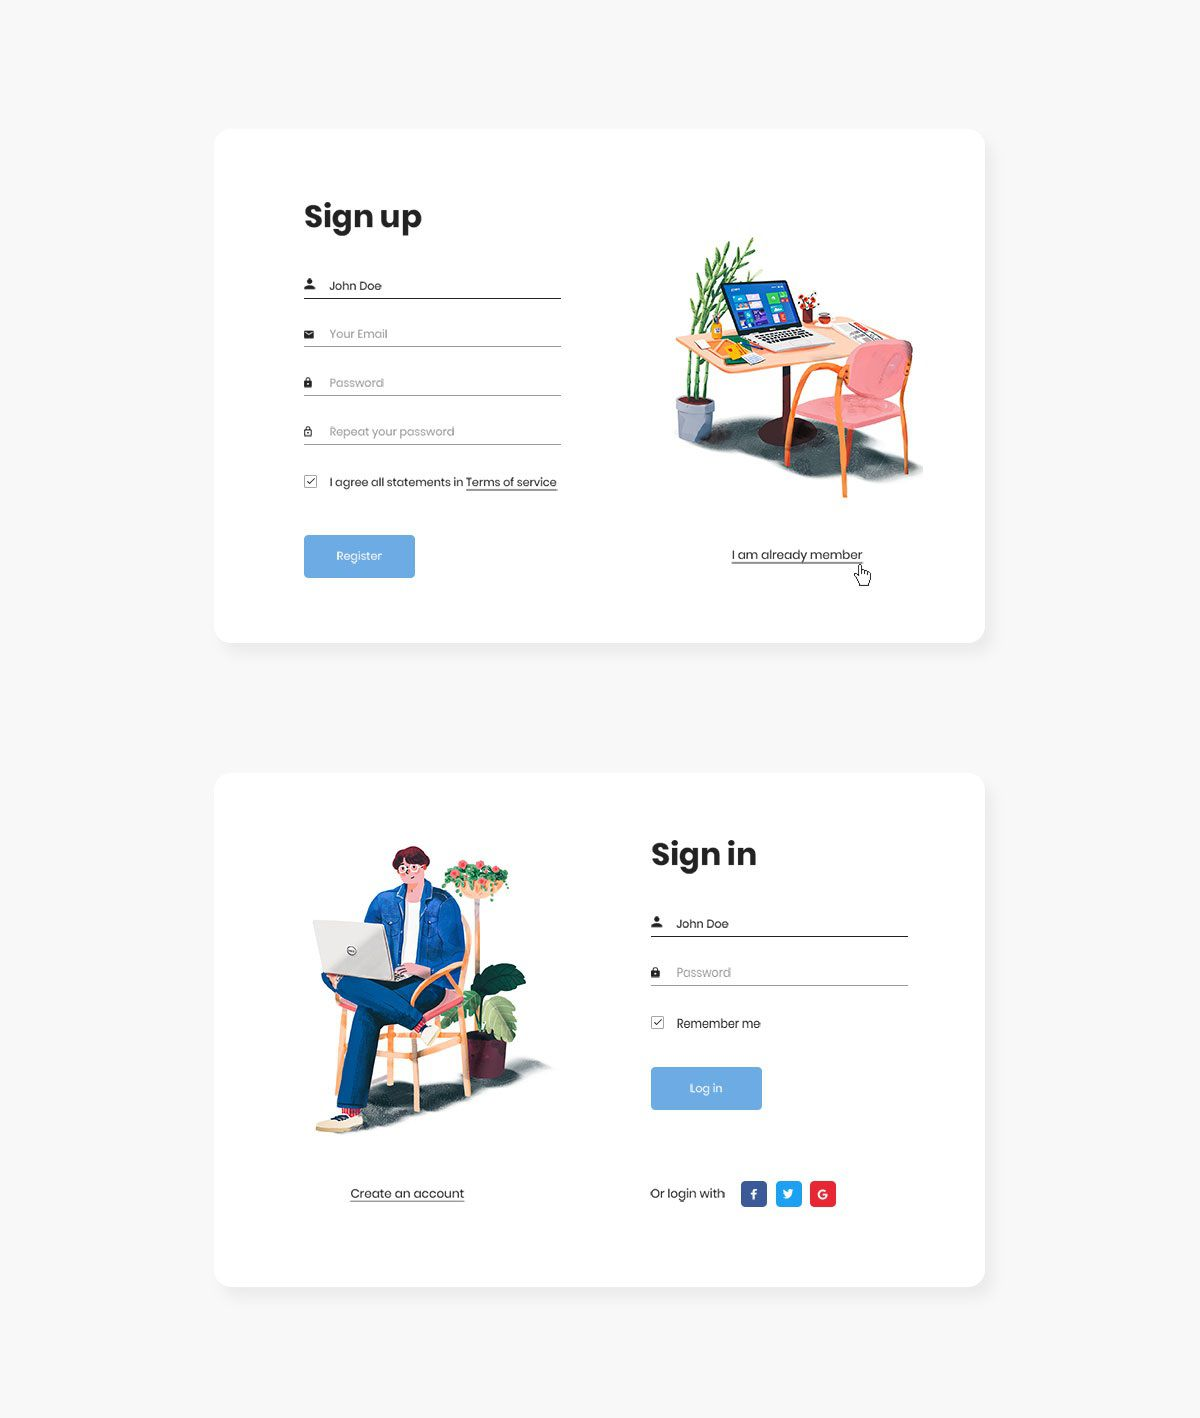 004 Astounding Registration Form Template Free Example  Printable Event SampleFull